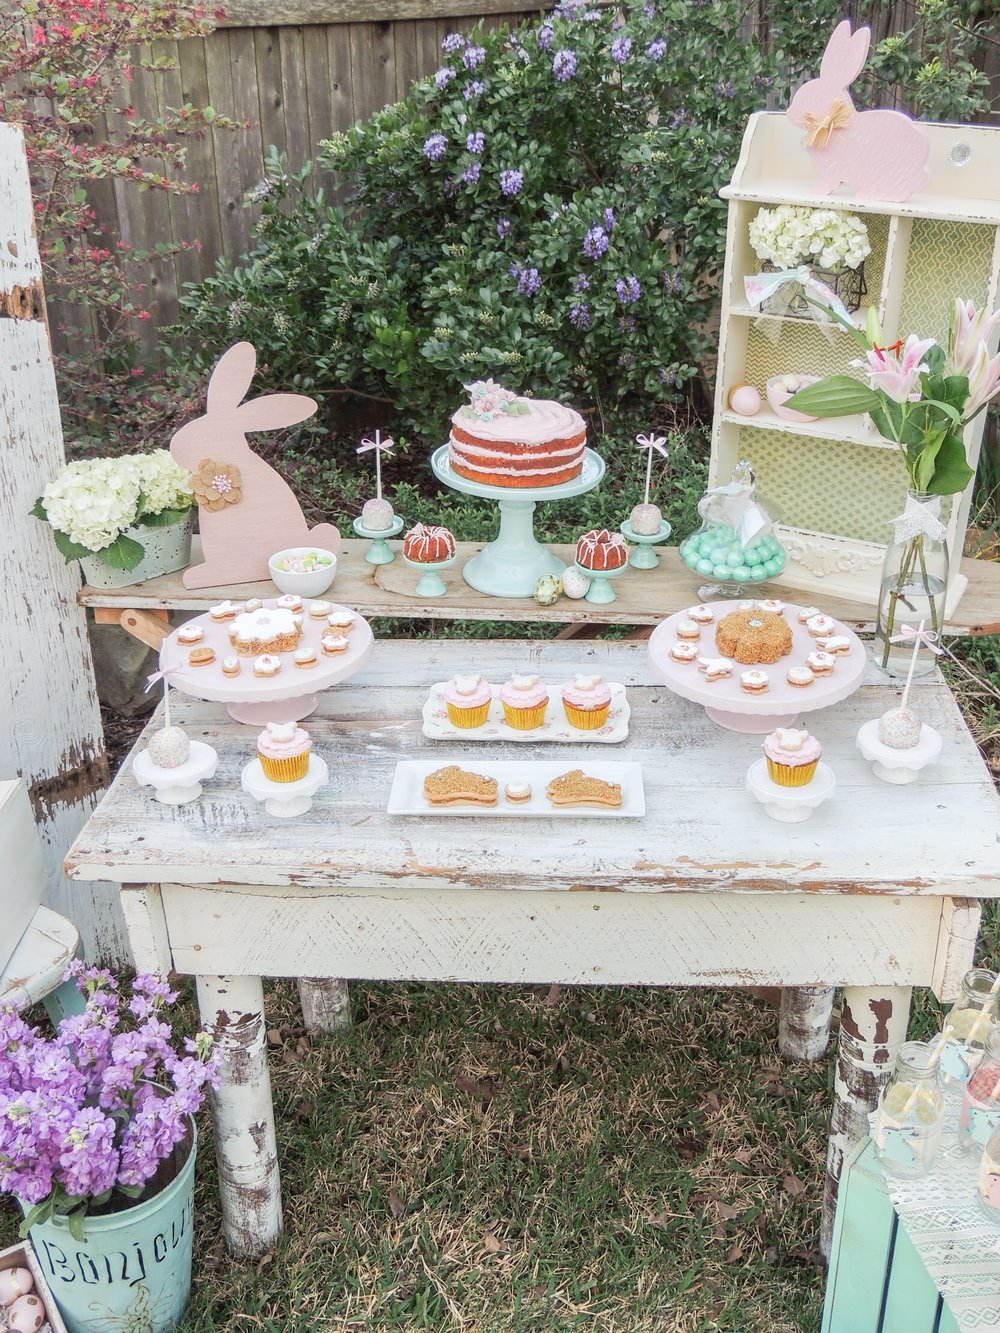 Gorgeously vintage and shabby chic Easter party in pretty pastels with a tiered carrot cake and mini bundt cakes. Styling by Austin Texas Party Planer Mint Event Design www.minteventdesign.com #eastertable #easterdecor #easterparty #partyideas #easterideas #easterdessert #shabbychic